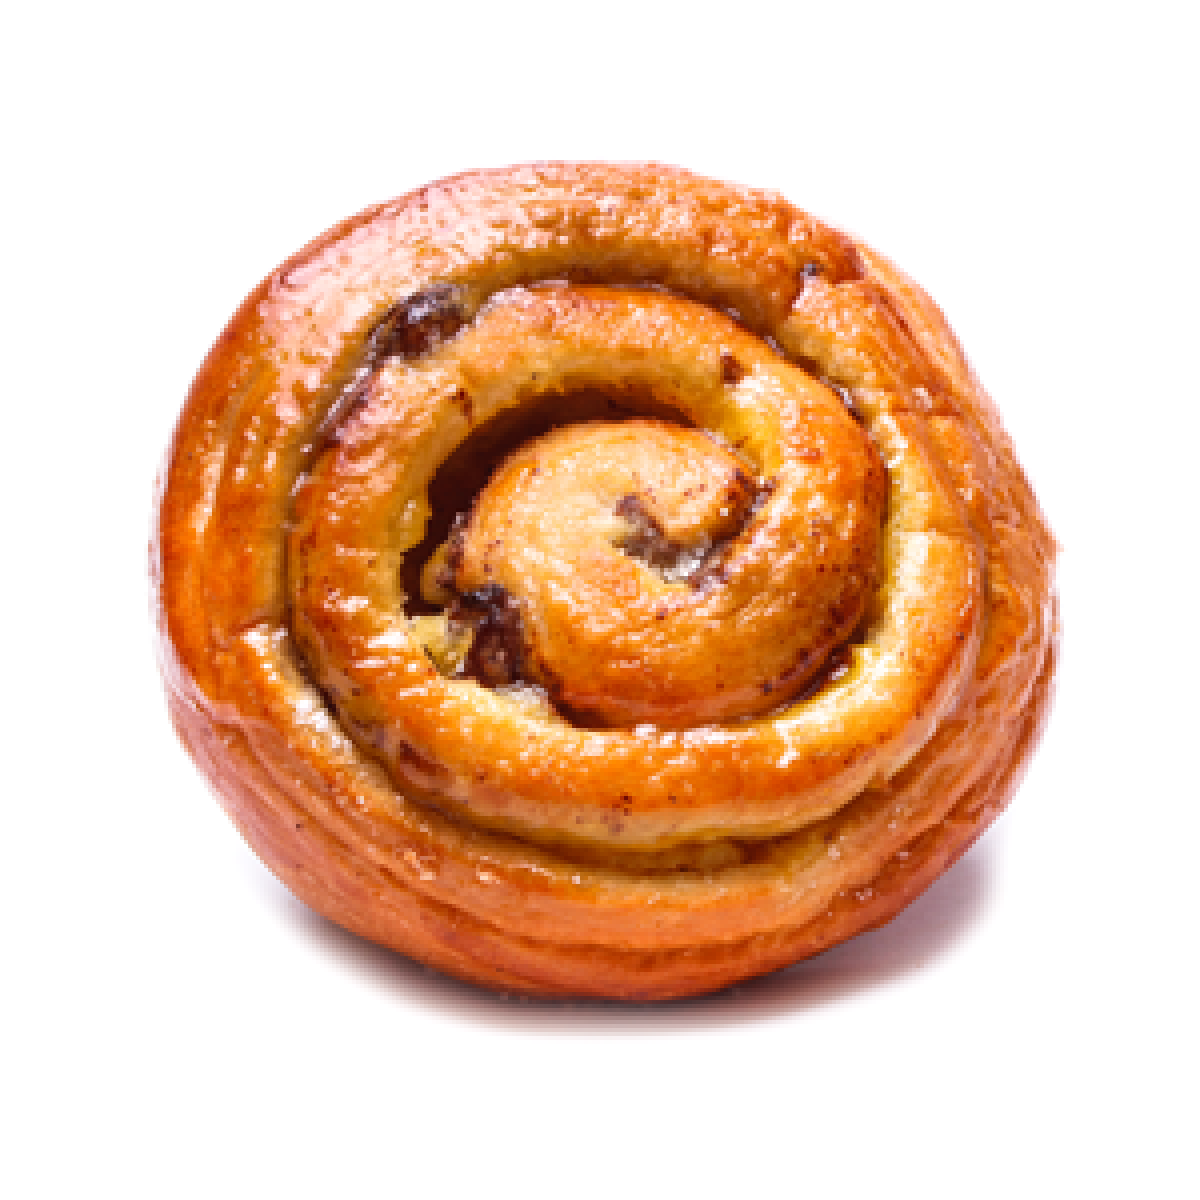 Cinnamon Roll Png (110+ images in Collection) Page 3.